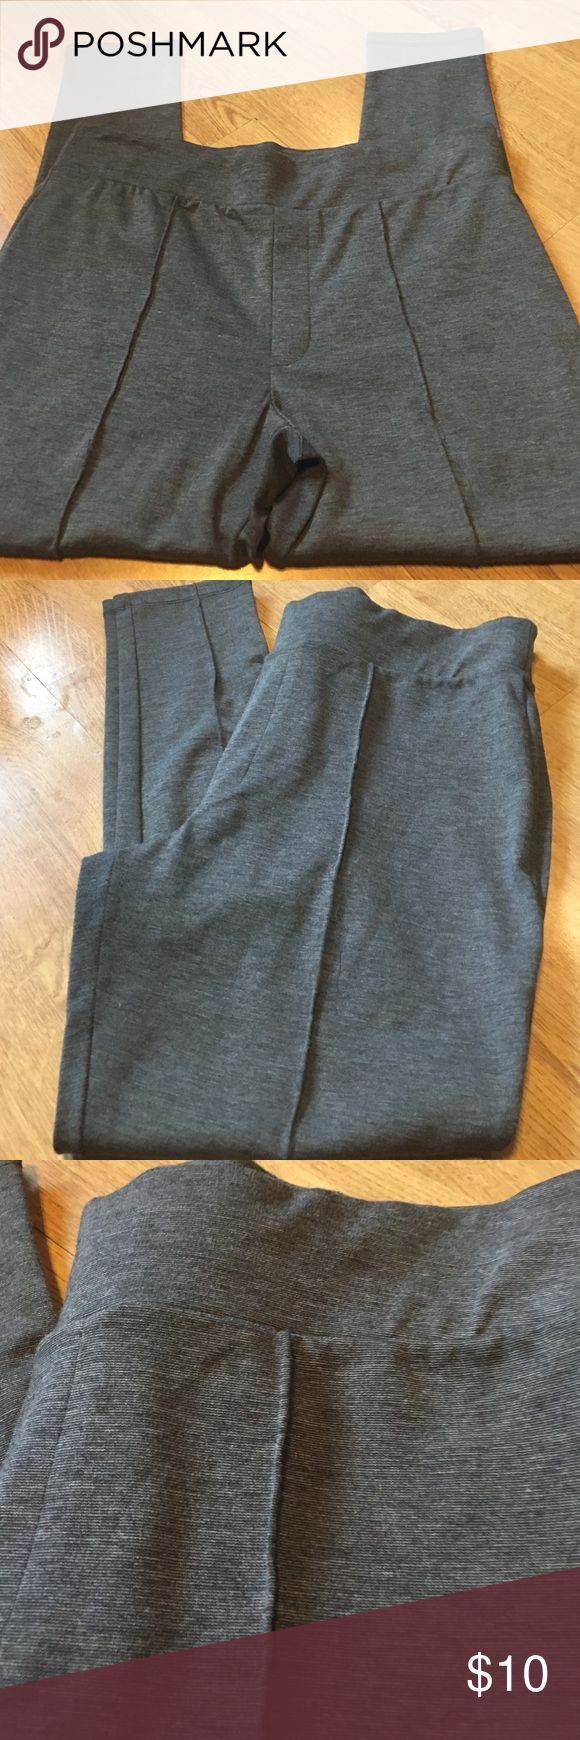 Nice charcoal leggings Charcoal gray seamed dress legging - size XL! These can be dressed up or made casual- well made and thicker material Pure Energy Pants Leggings